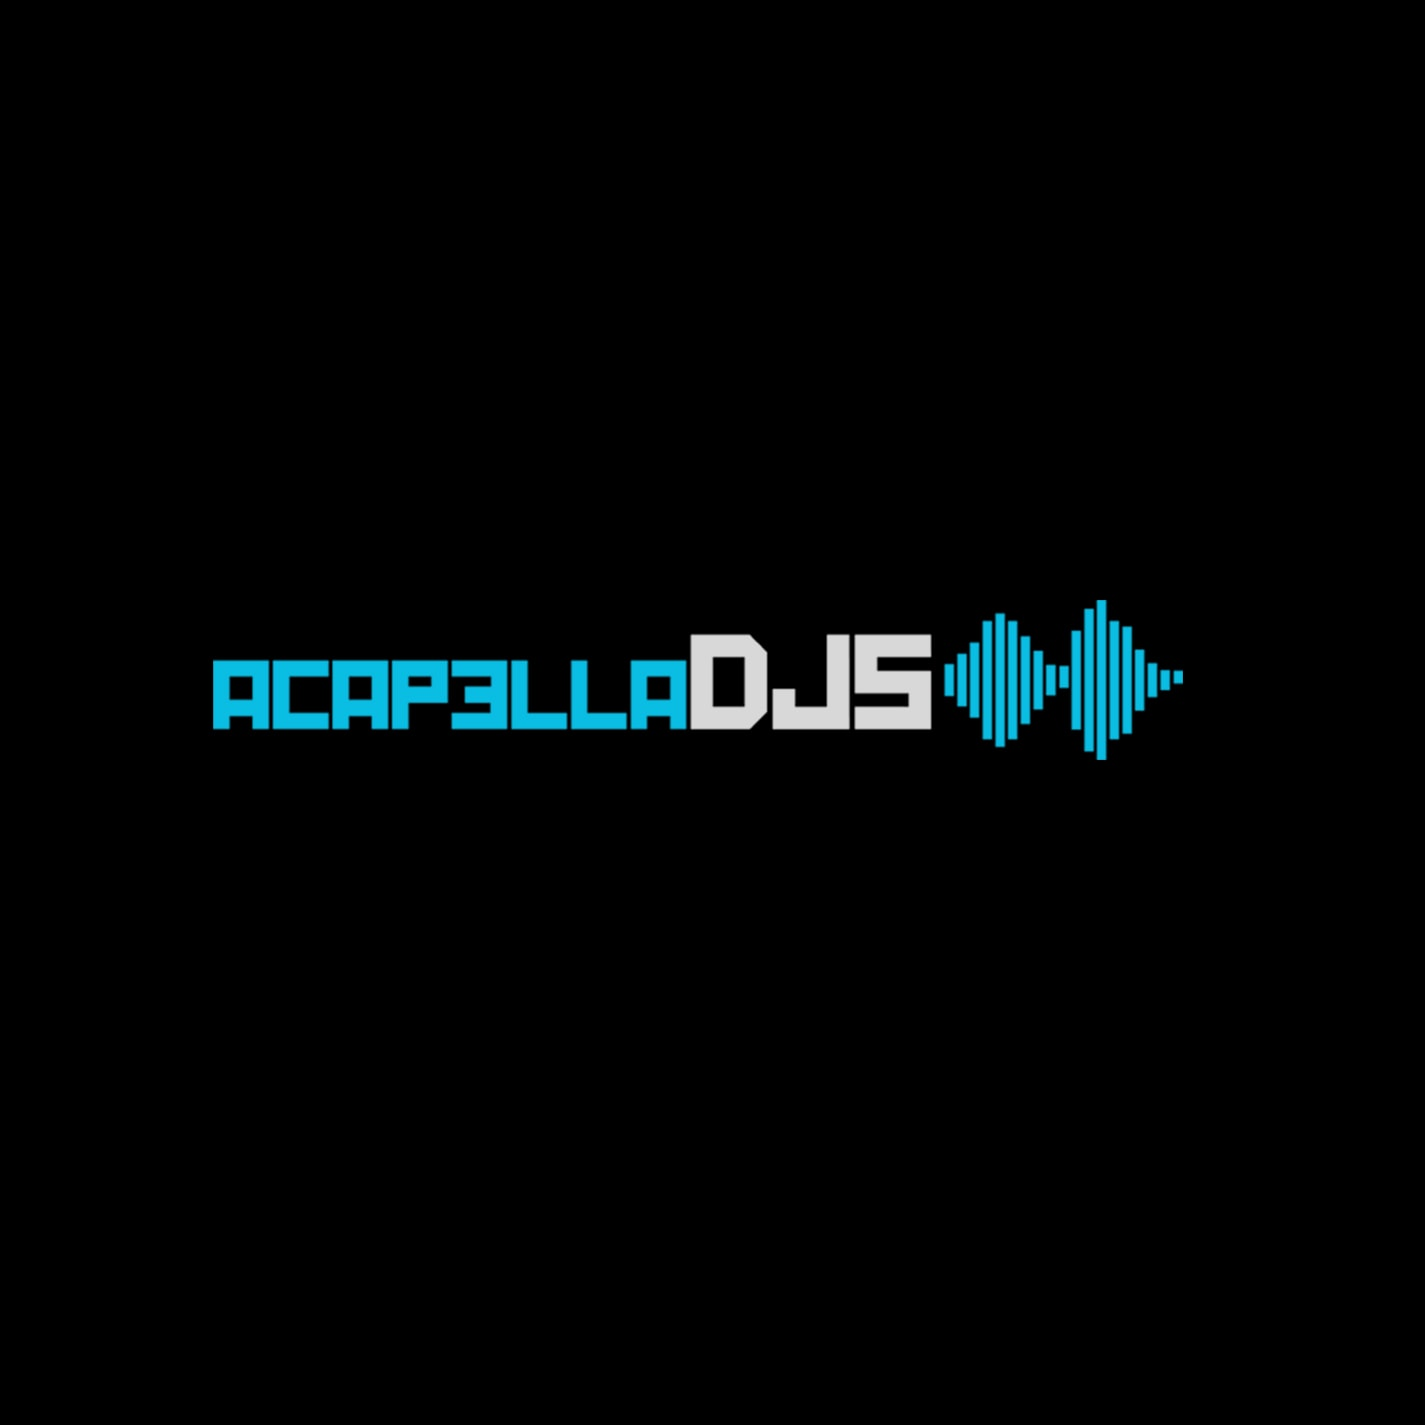 acapelladjs-logo-design-accolademedia